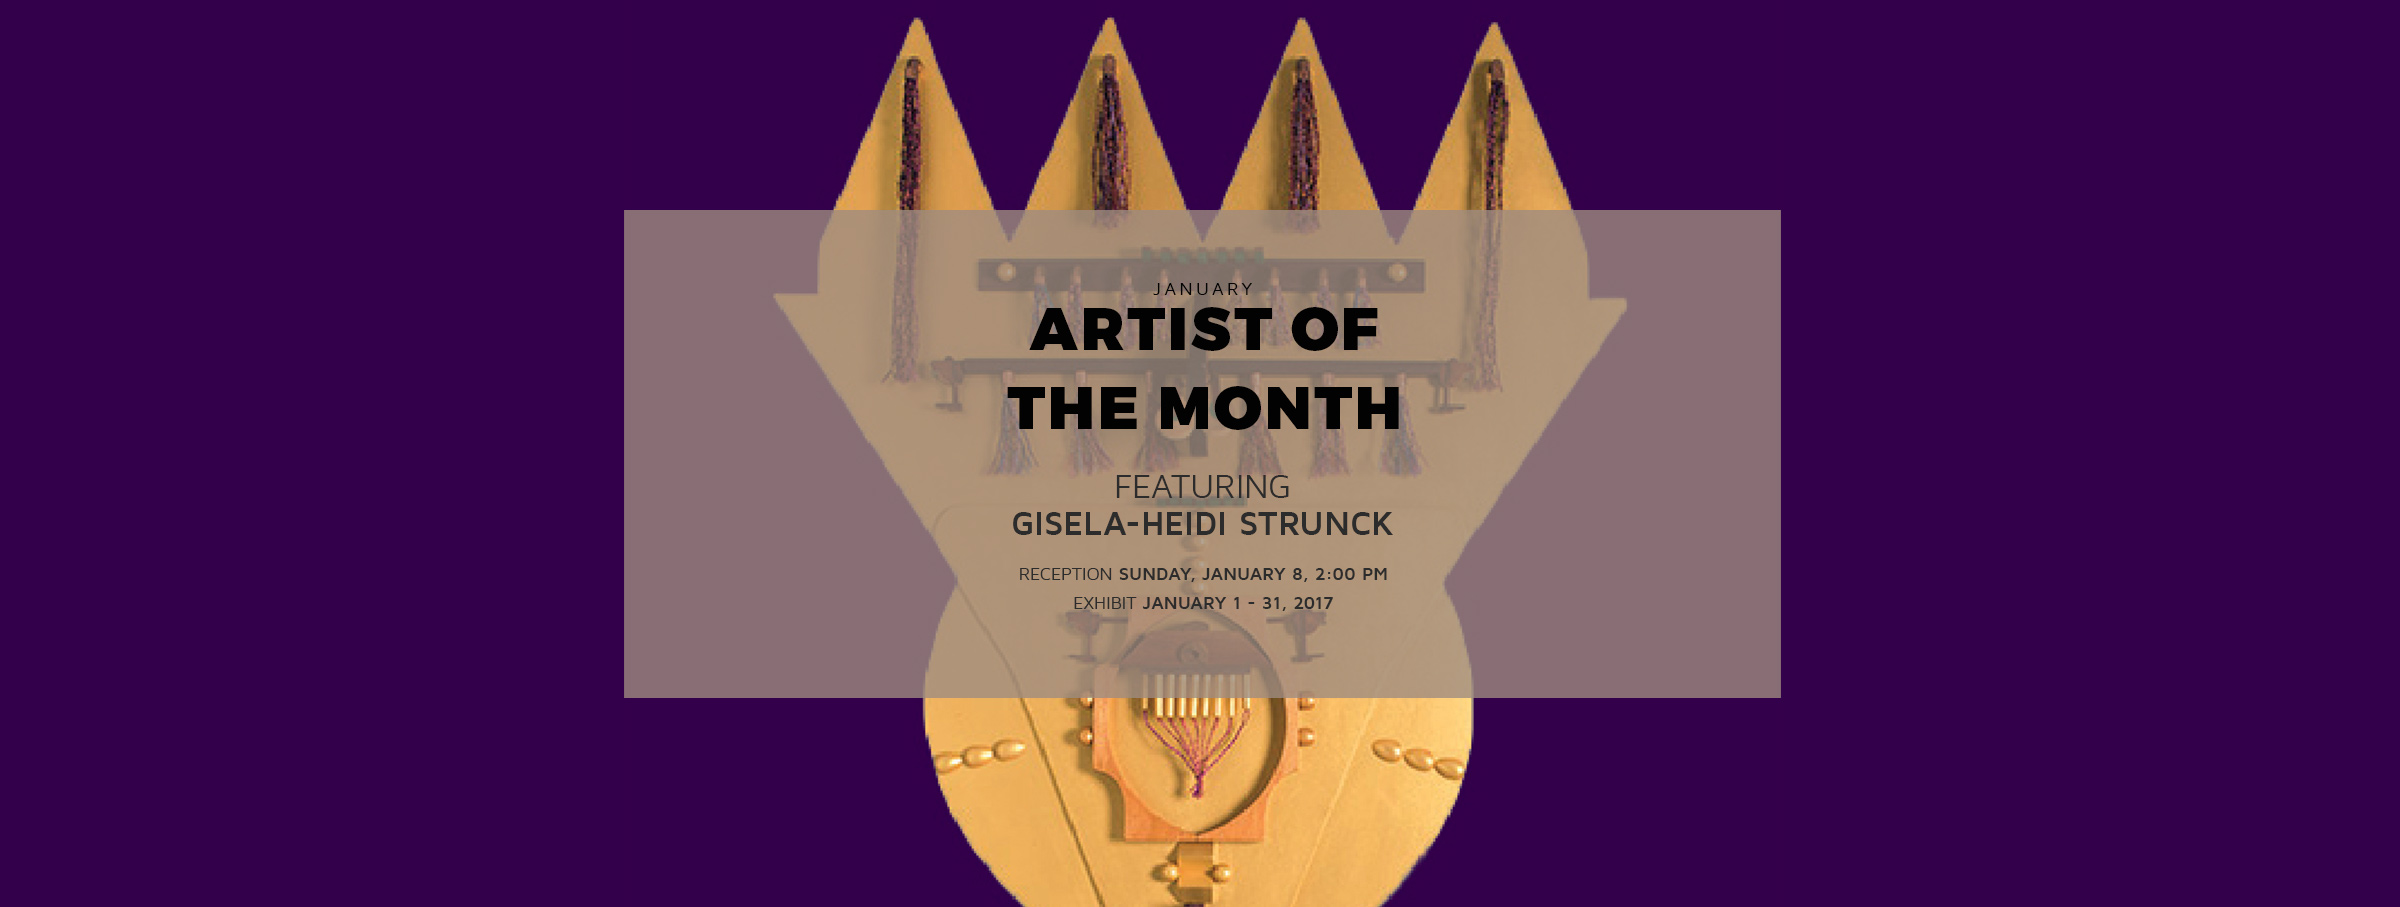 Geometric Art Exhibits in Dallas: Gisela-Heidi Strunk at the Museum of Geometric and MADI Art